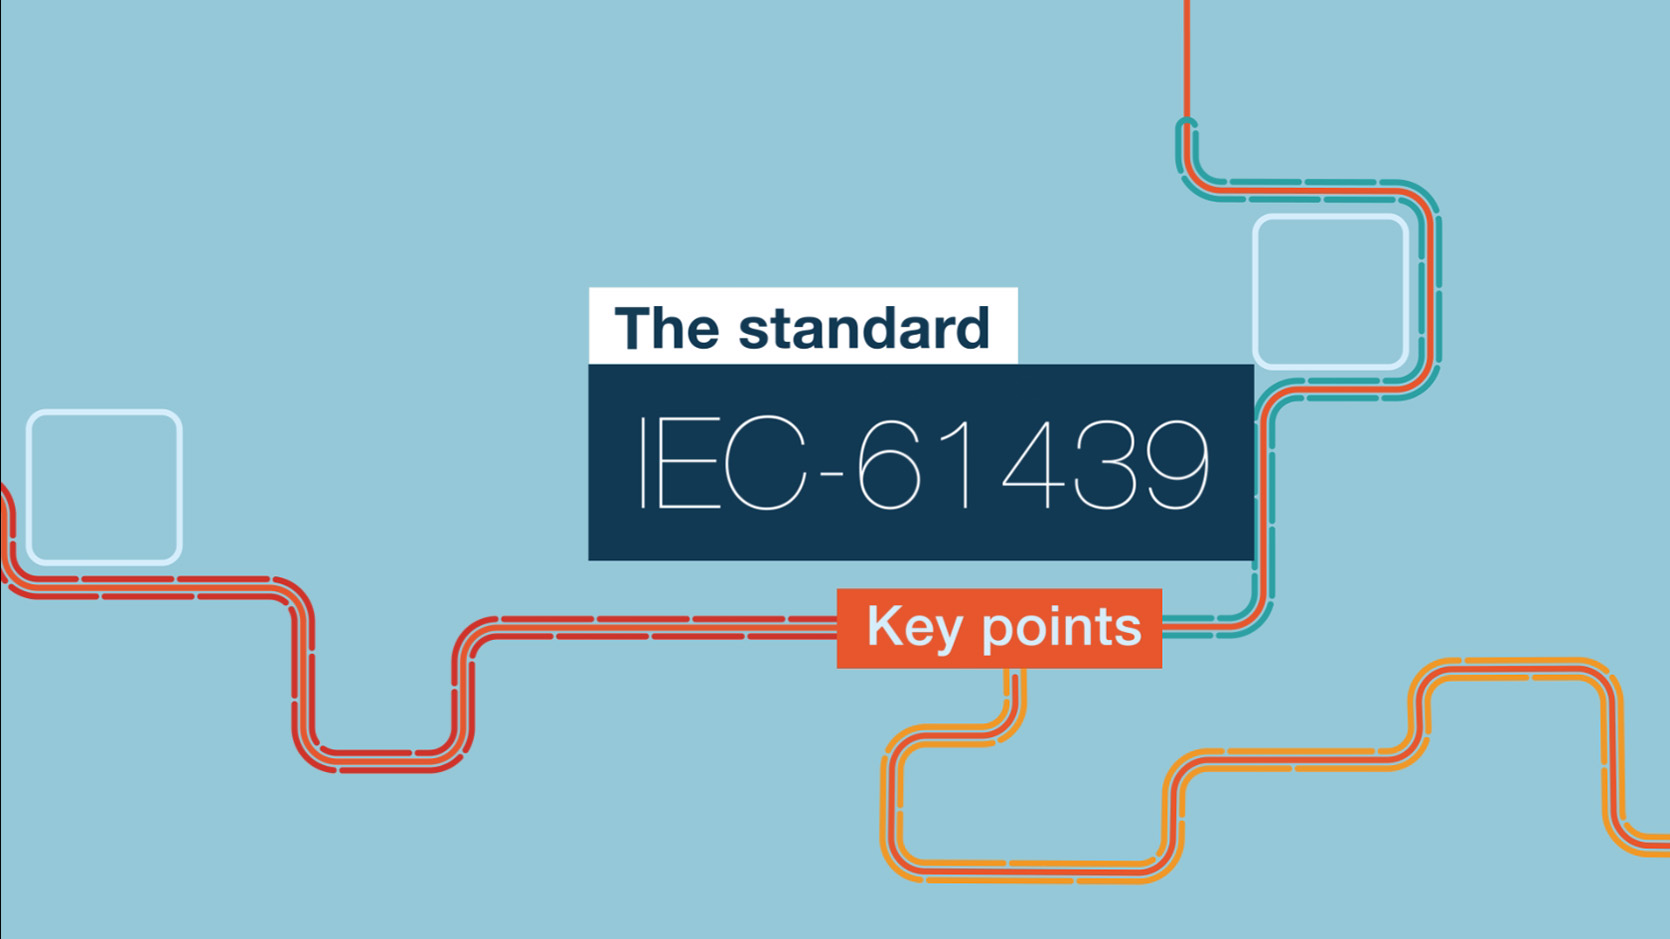 About standard IEC-61439 on